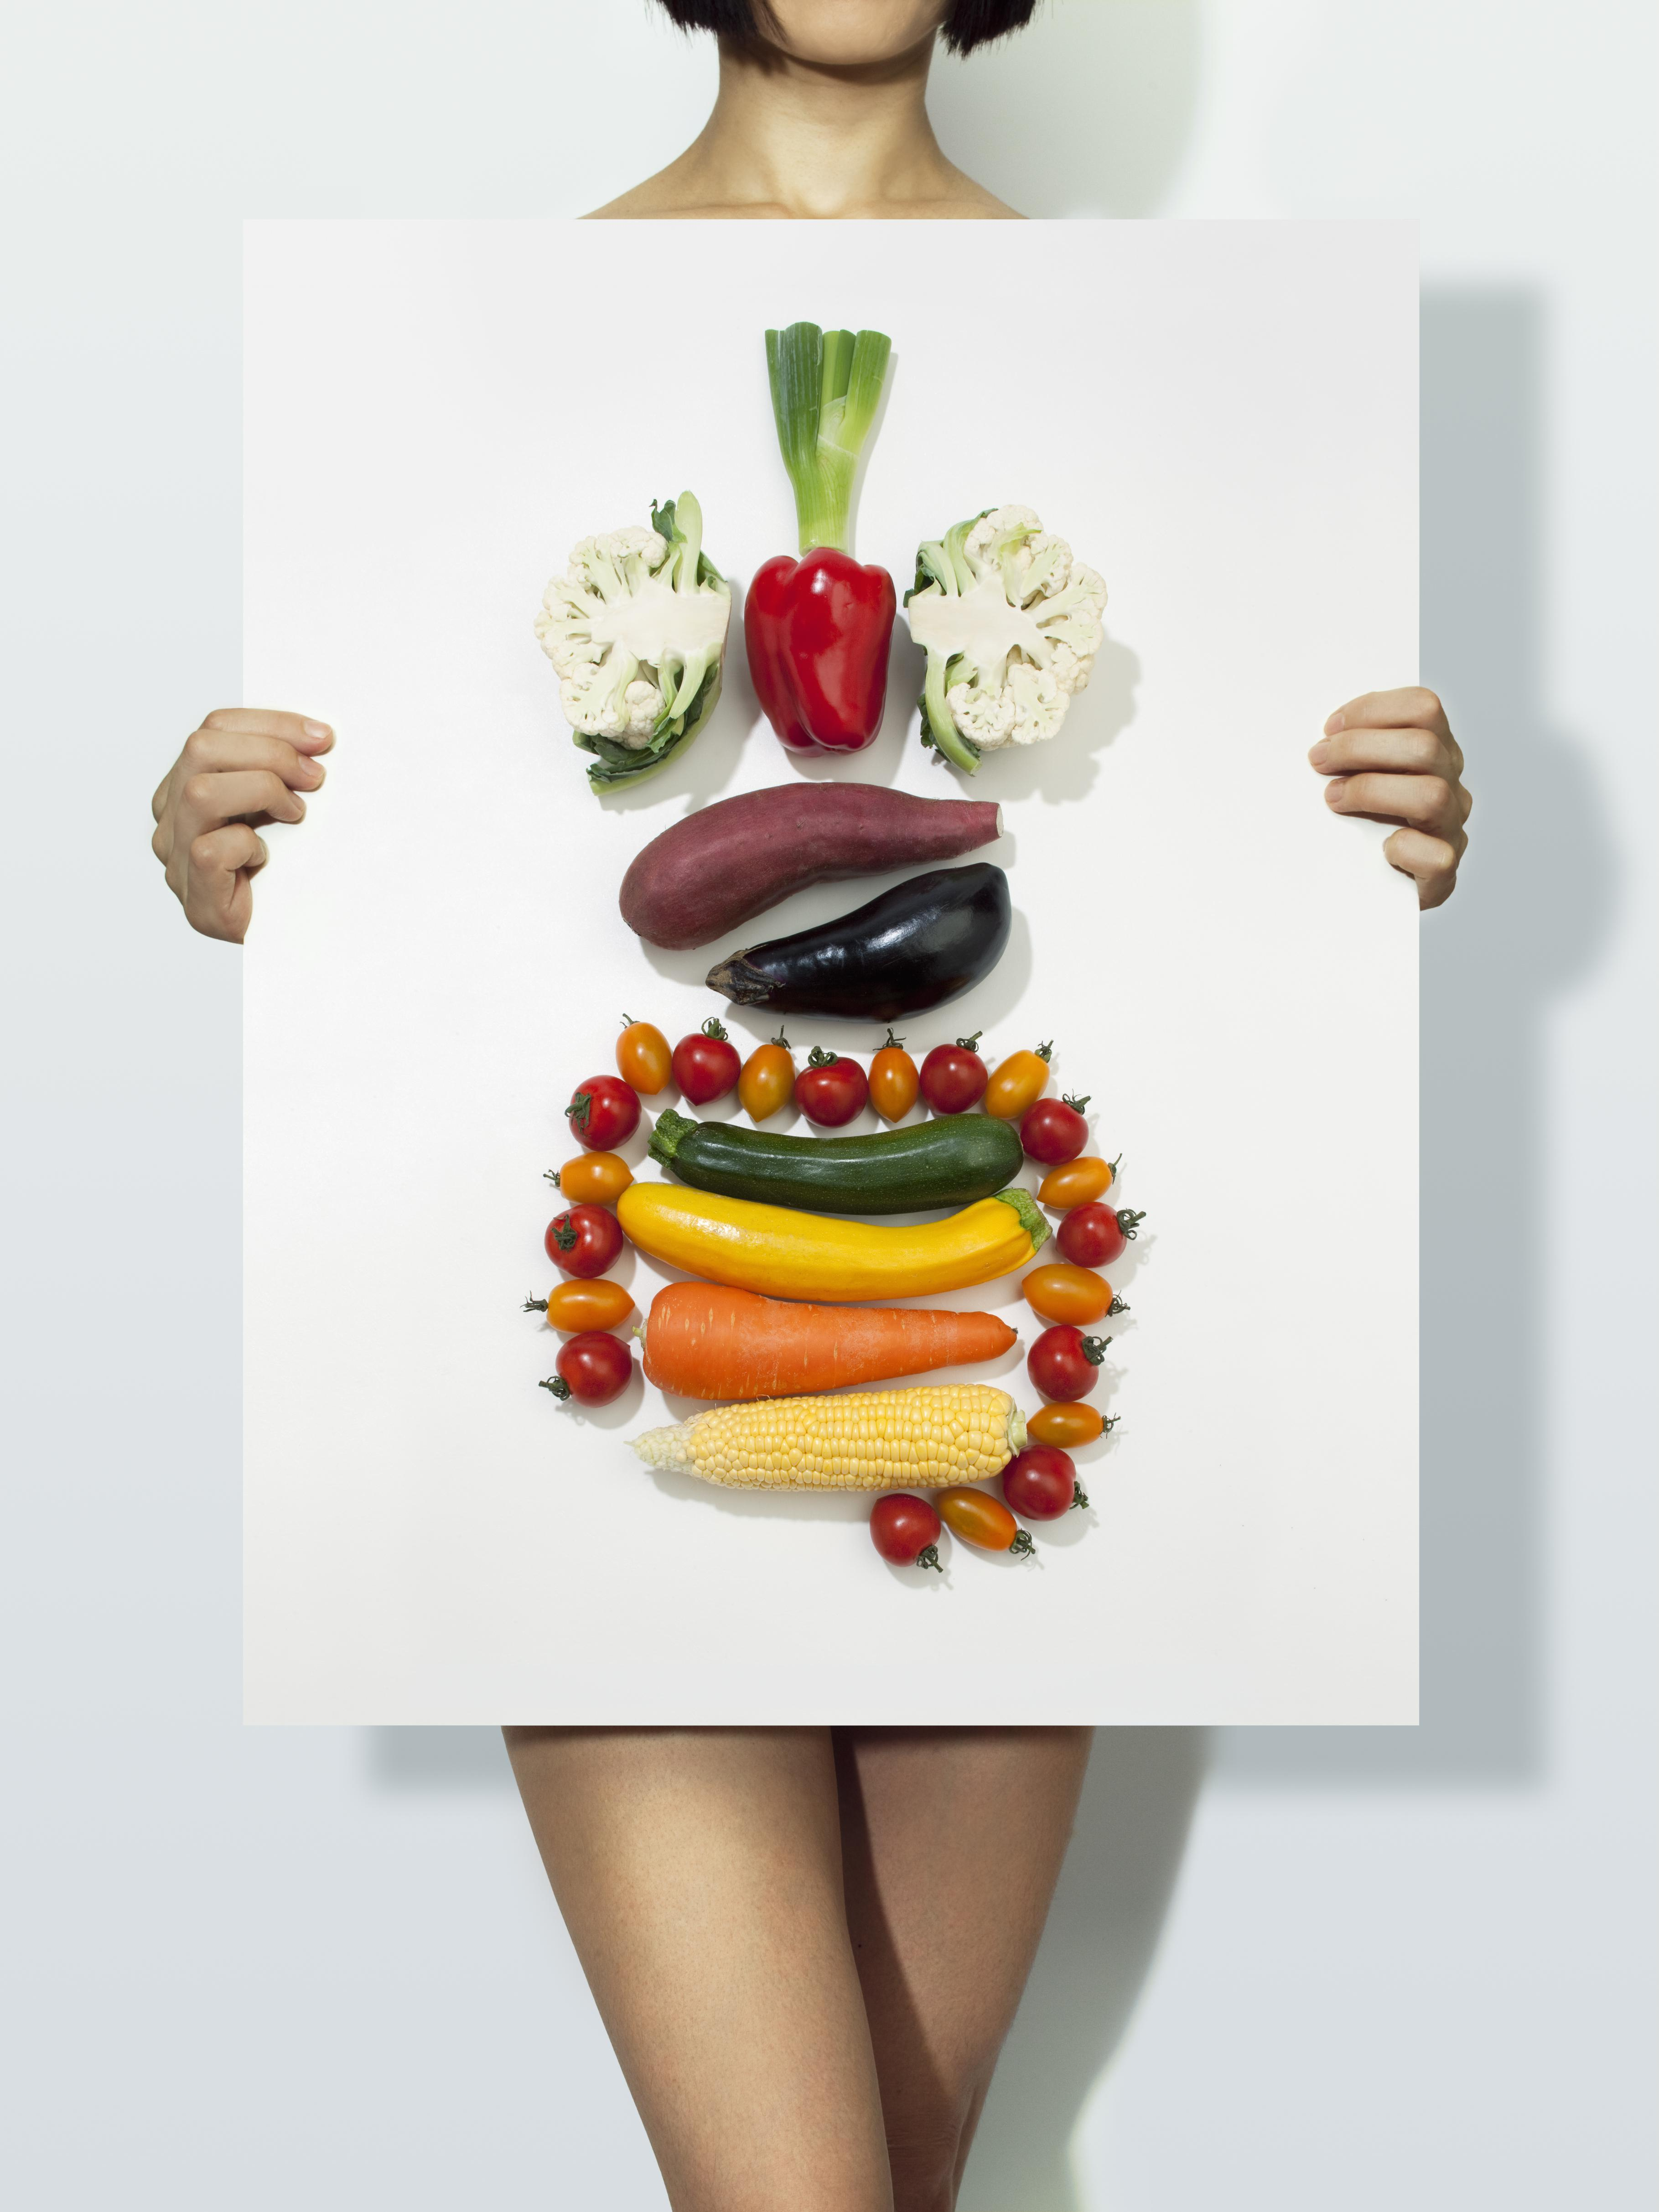 The body made with vegetables